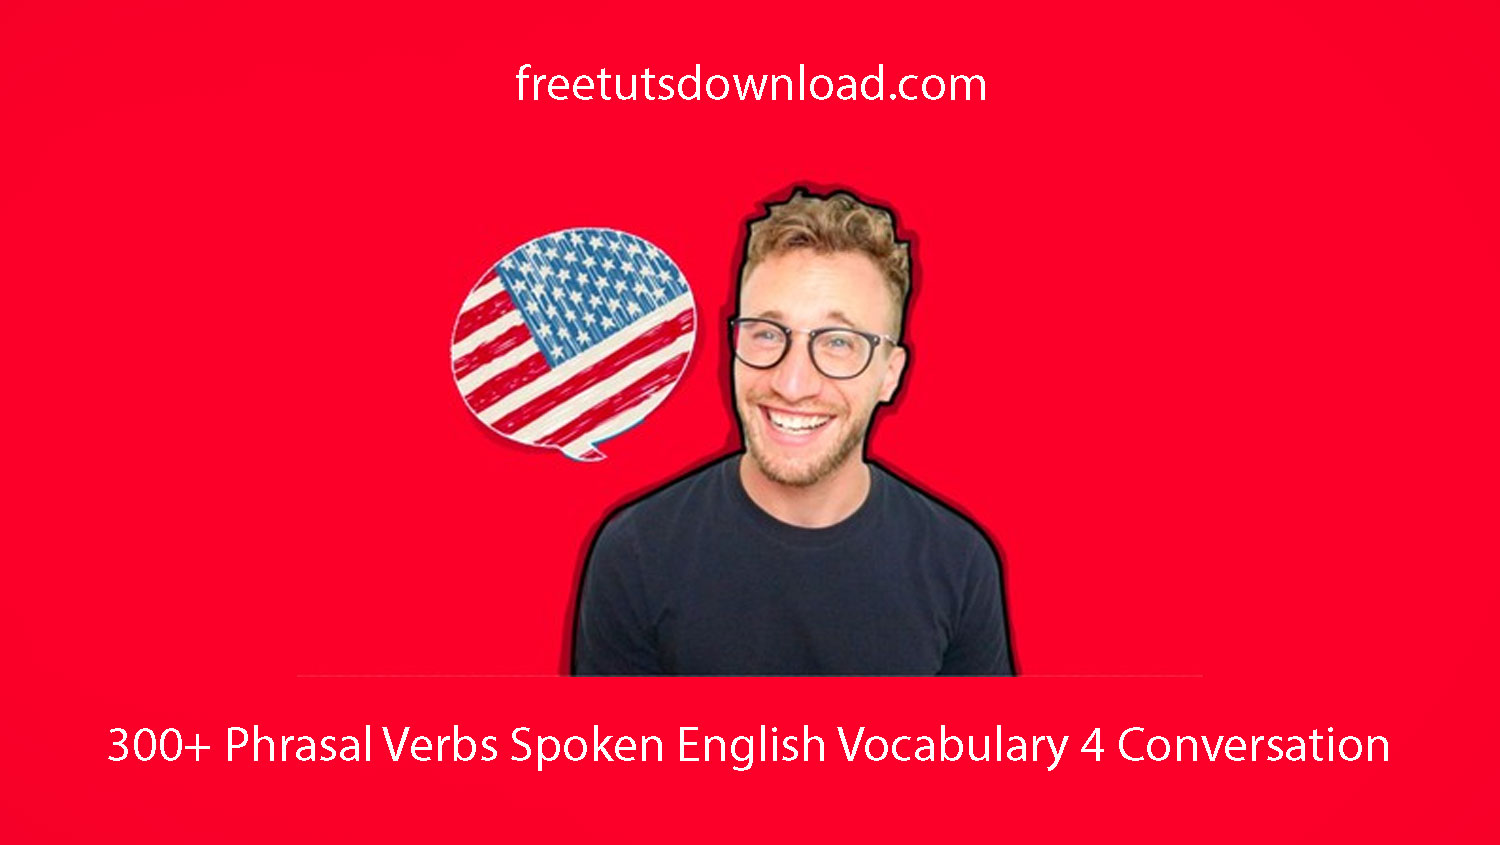 300+ Phrasal Verbs Spoken English Vocabulary 4 Conversation